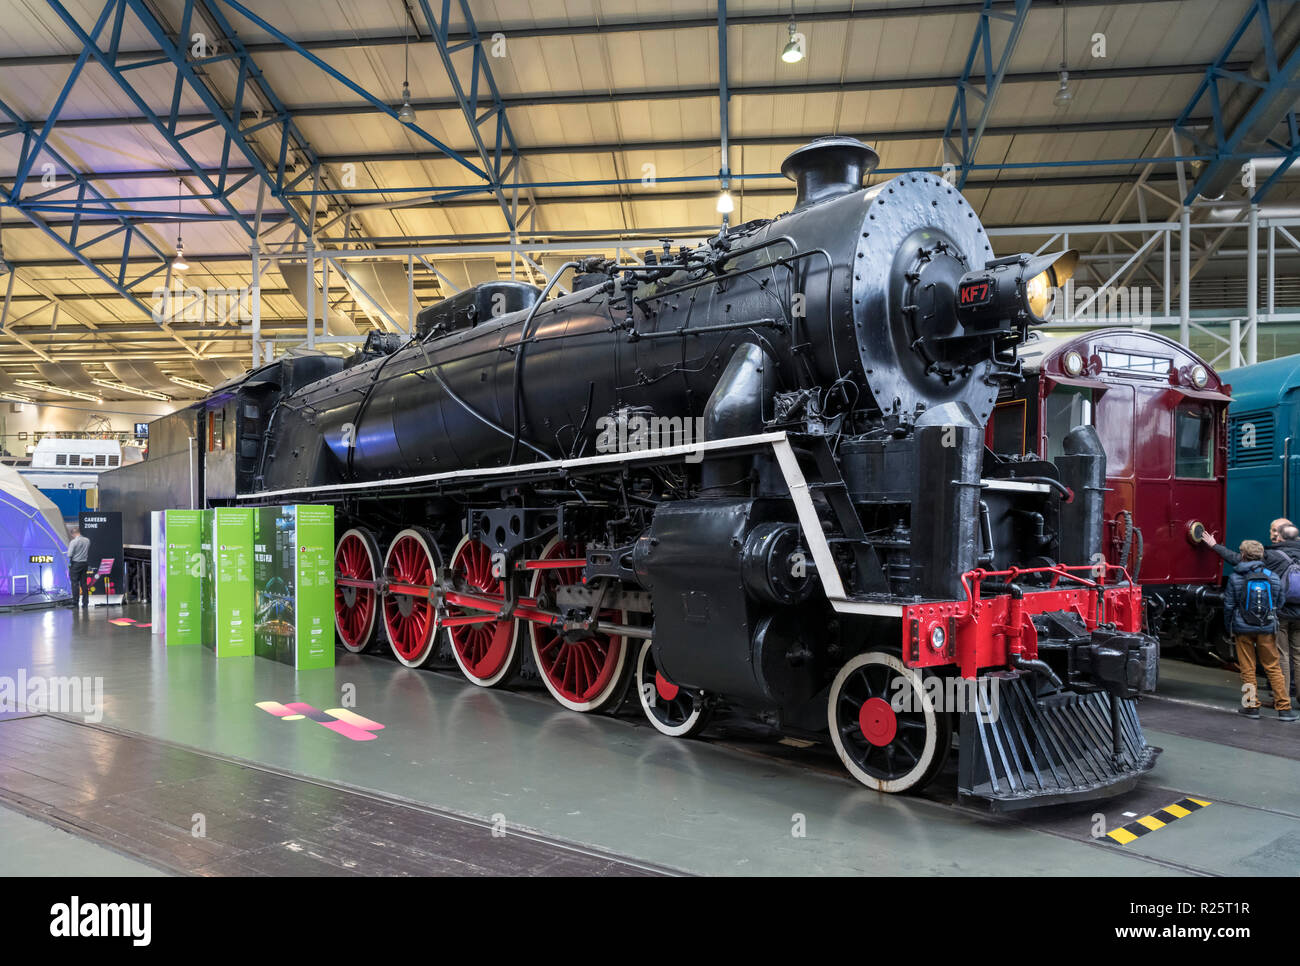 1935 KF7 Steam Locomotive in the Great Hall, National Railway Museum, York, England. The KF7 is one of the largest steam locomotives built in Britain. - Stock Image